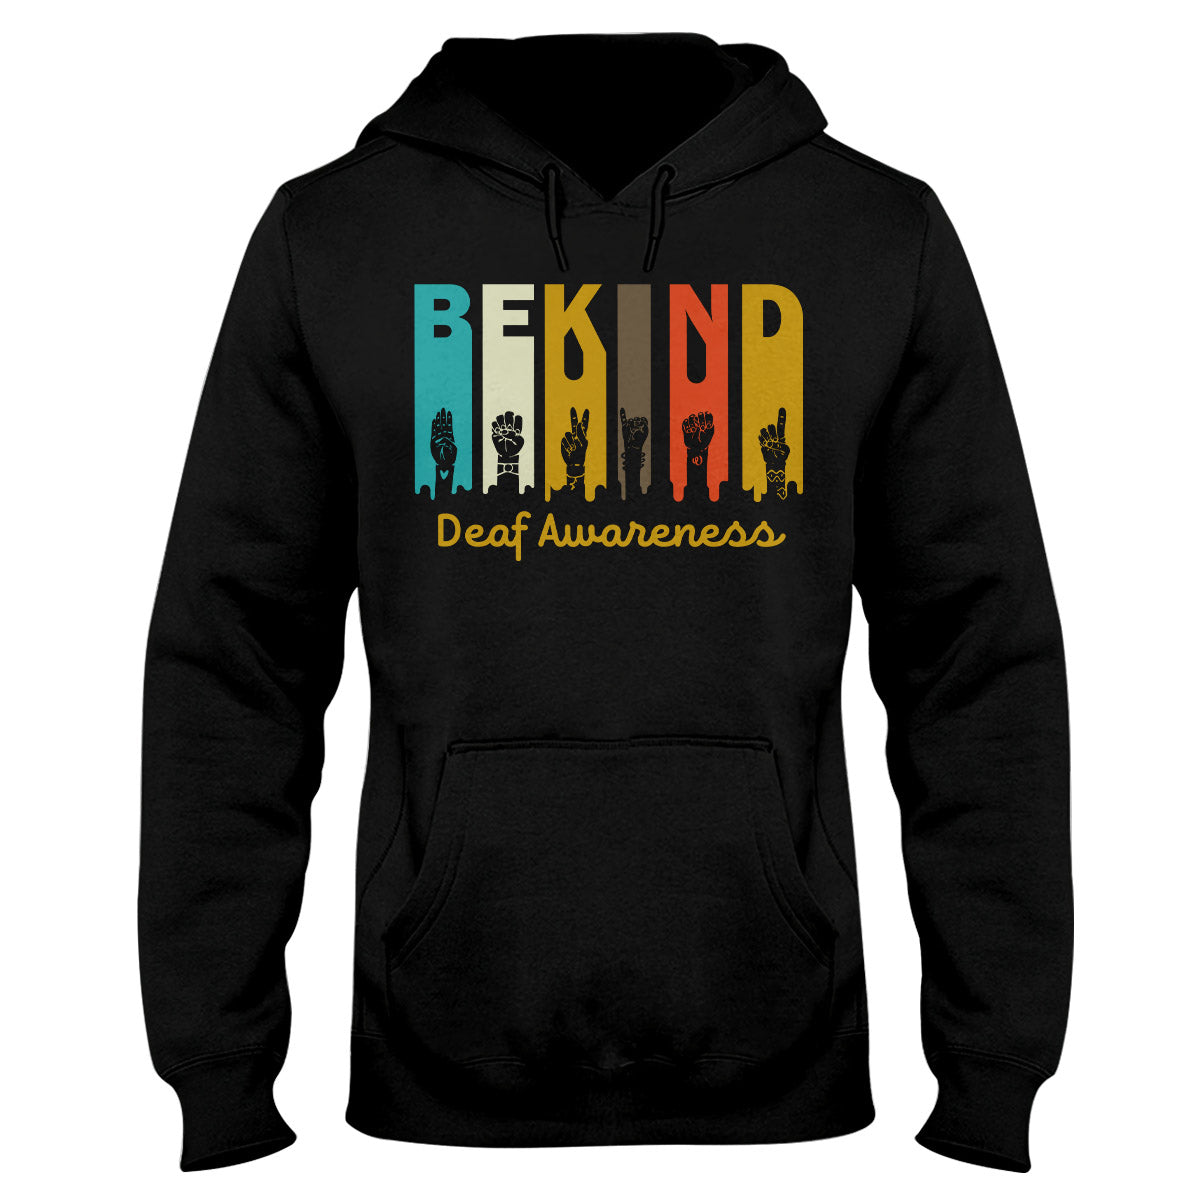 Be Kind Hand Gestures Deaf Awareness Hoodie